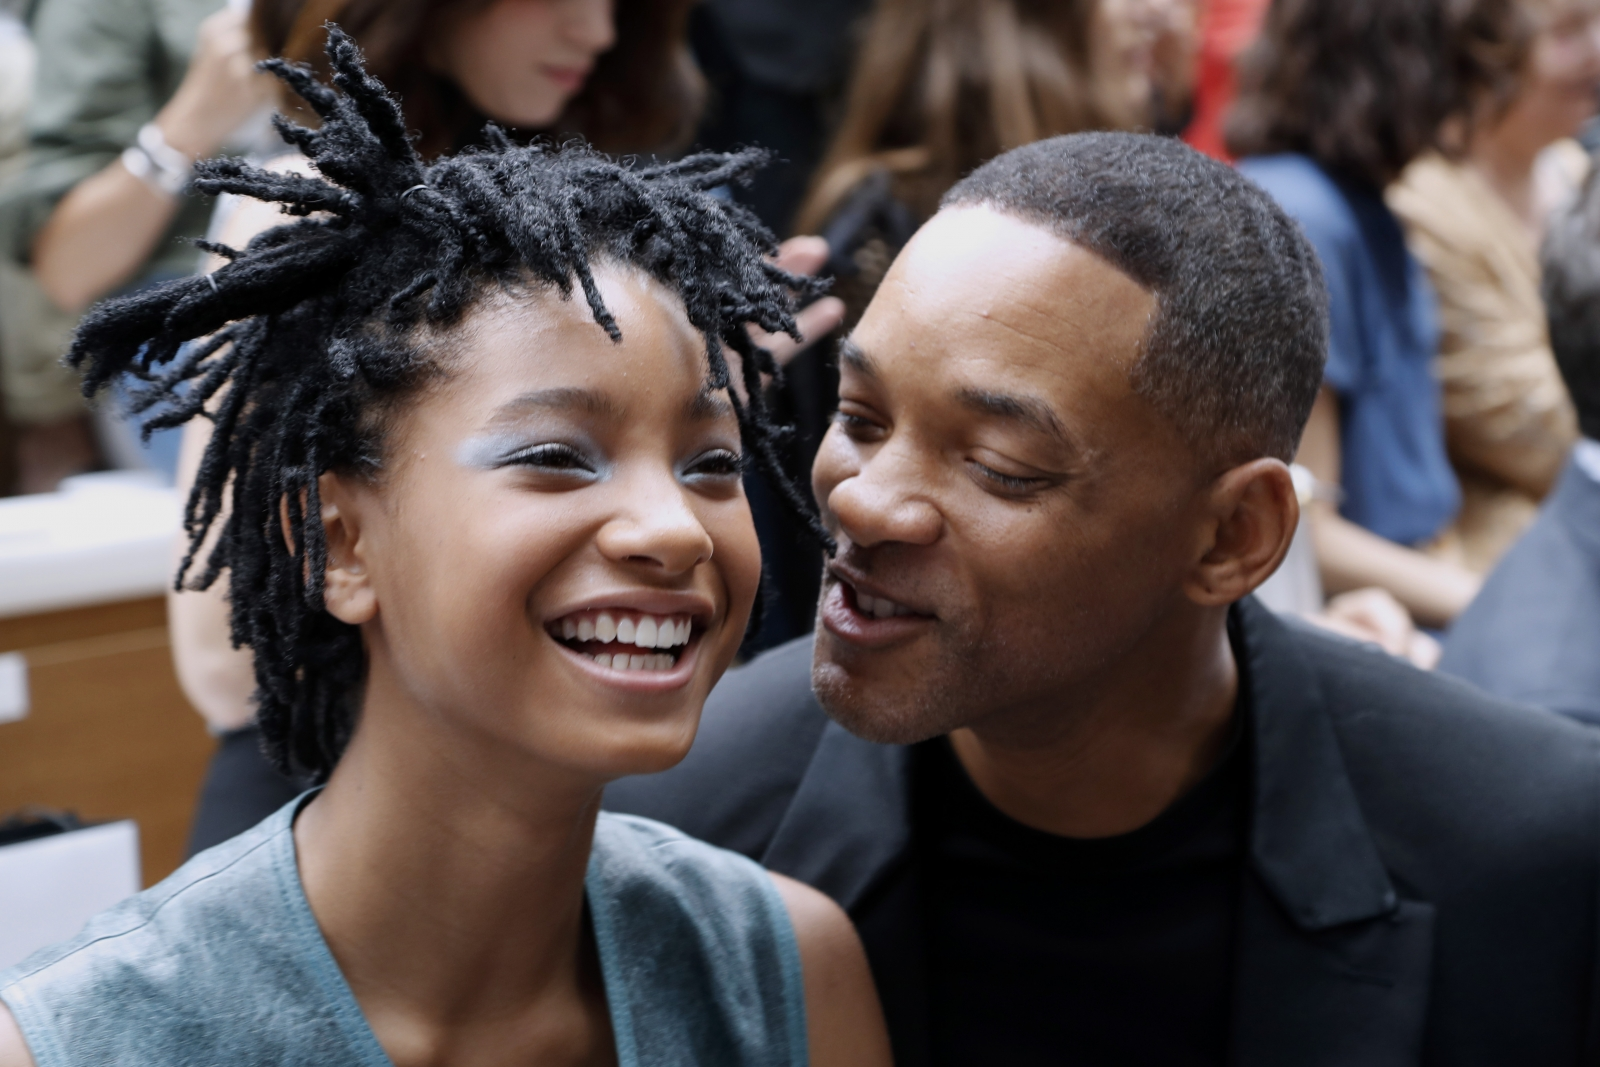 The reviews for Will Smith's new movie are absolutely brutal